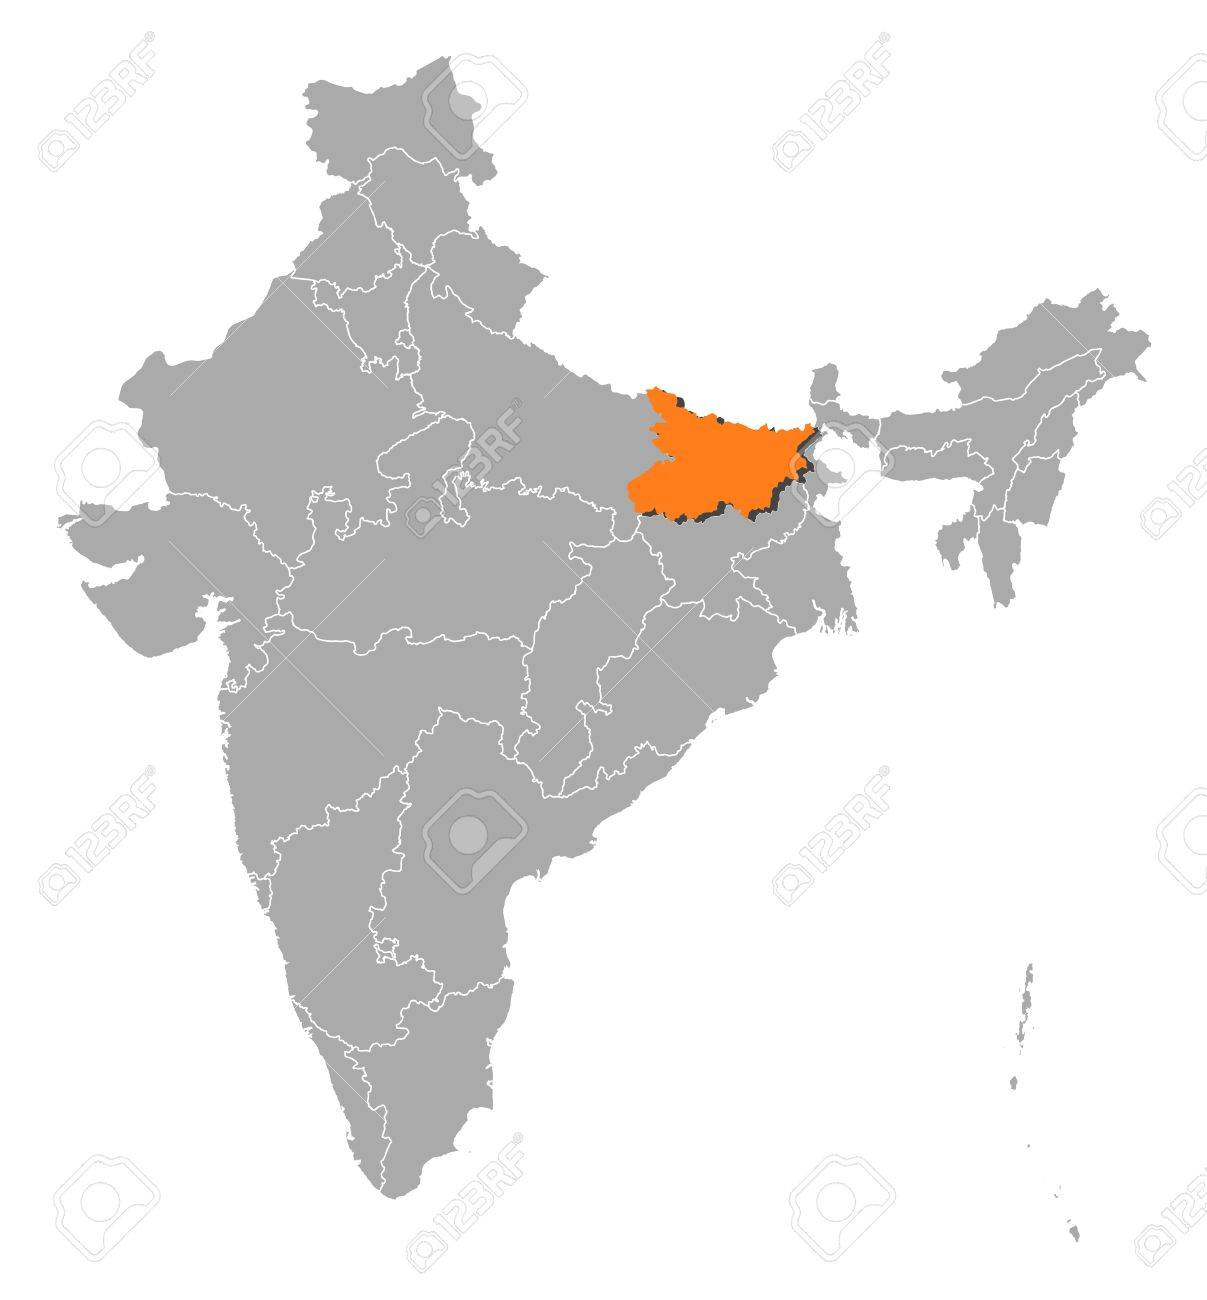 Political Map Of India With The Several States Where Bihar Is